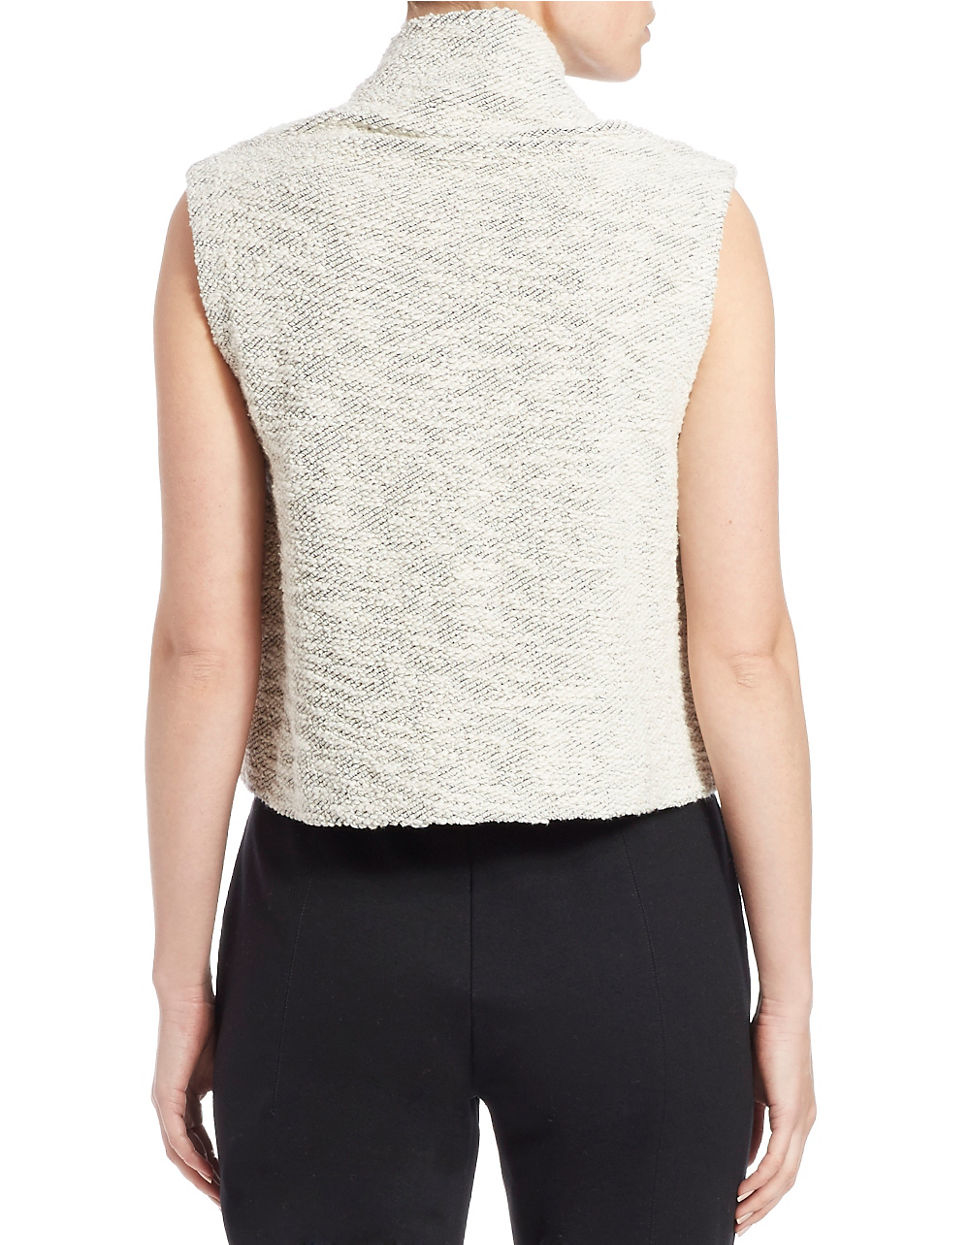 Lyst Eileen Fisher Petite Boxy Cotton Cowlneck Sweater